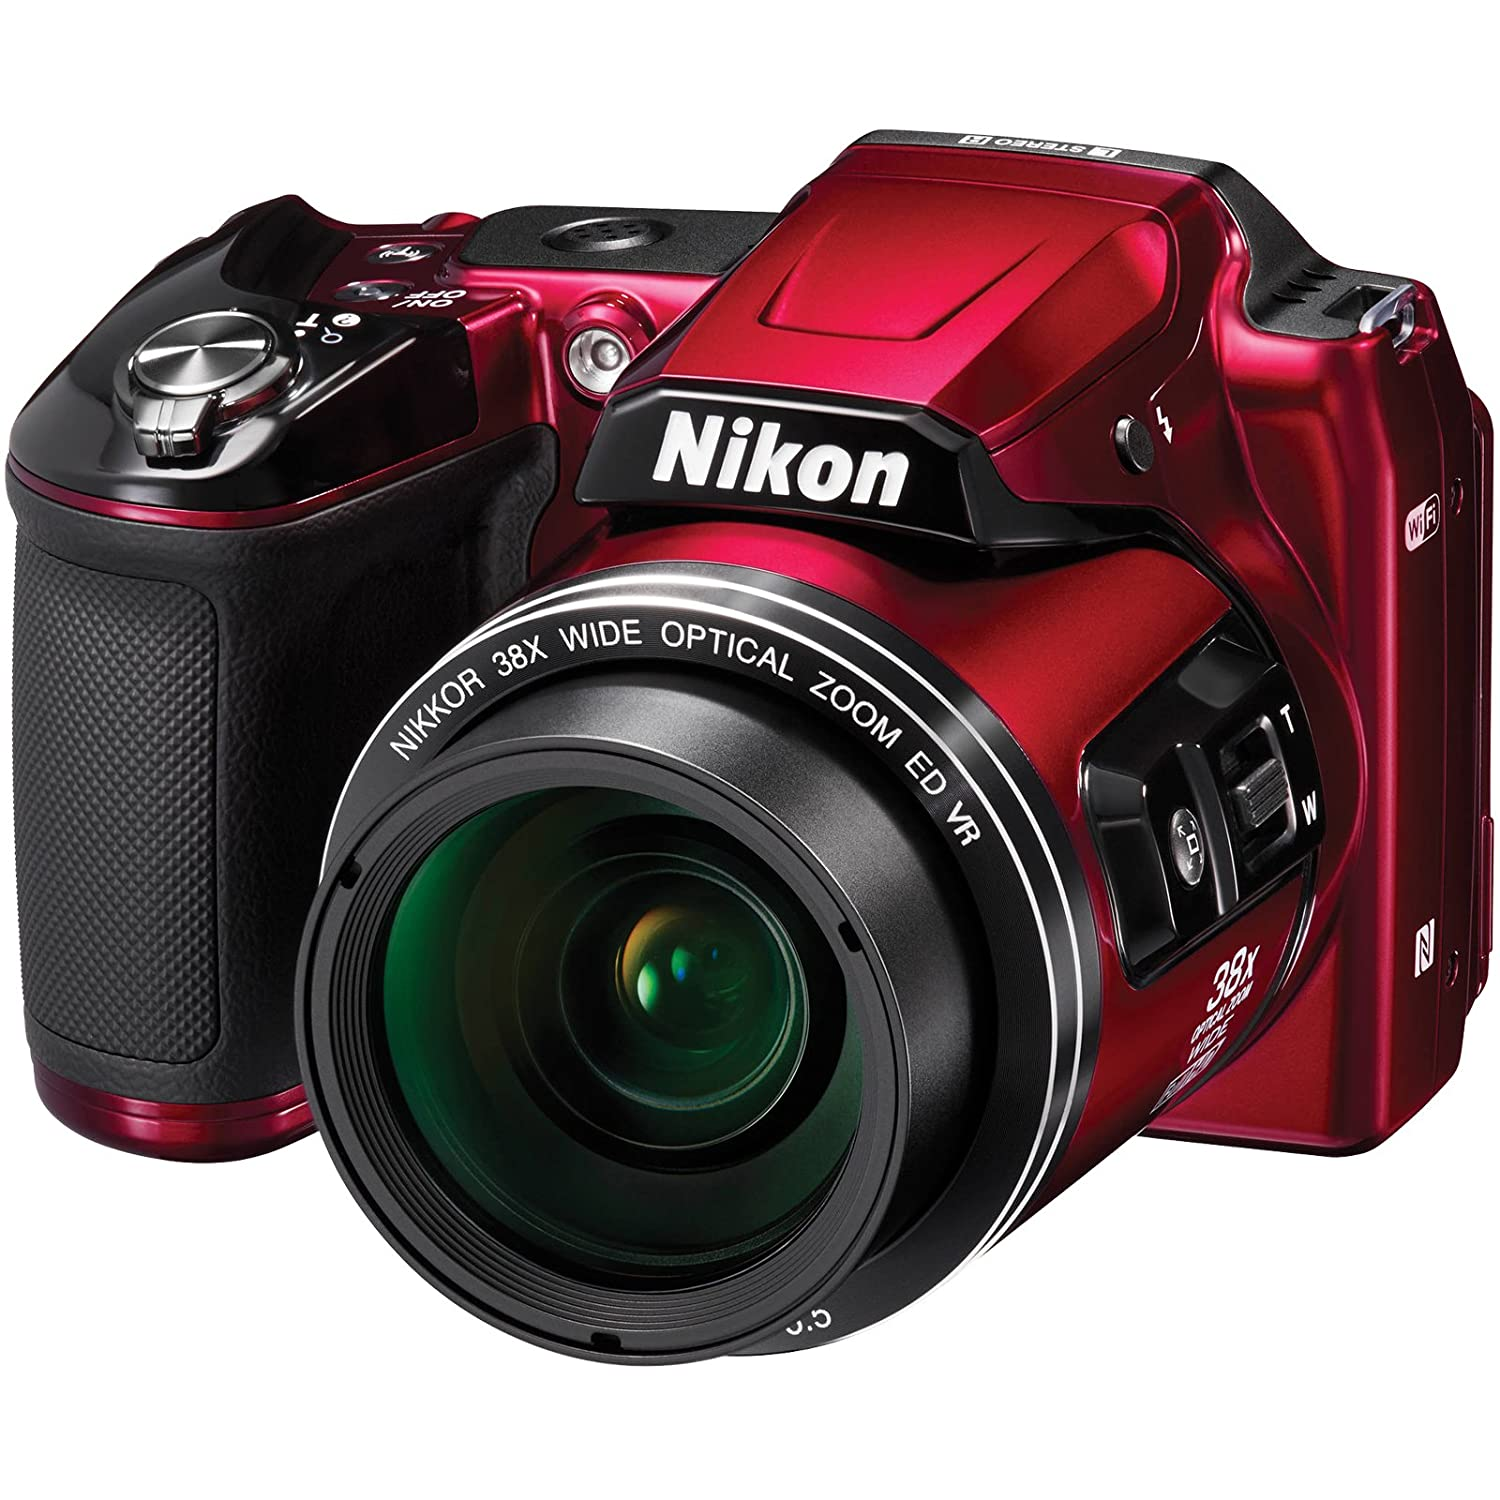 Nikon COOLPIX L840 Digital Camera with 38x Optical Zoom and Built-In Wi-Fi (Red) (Certified Refurbished)